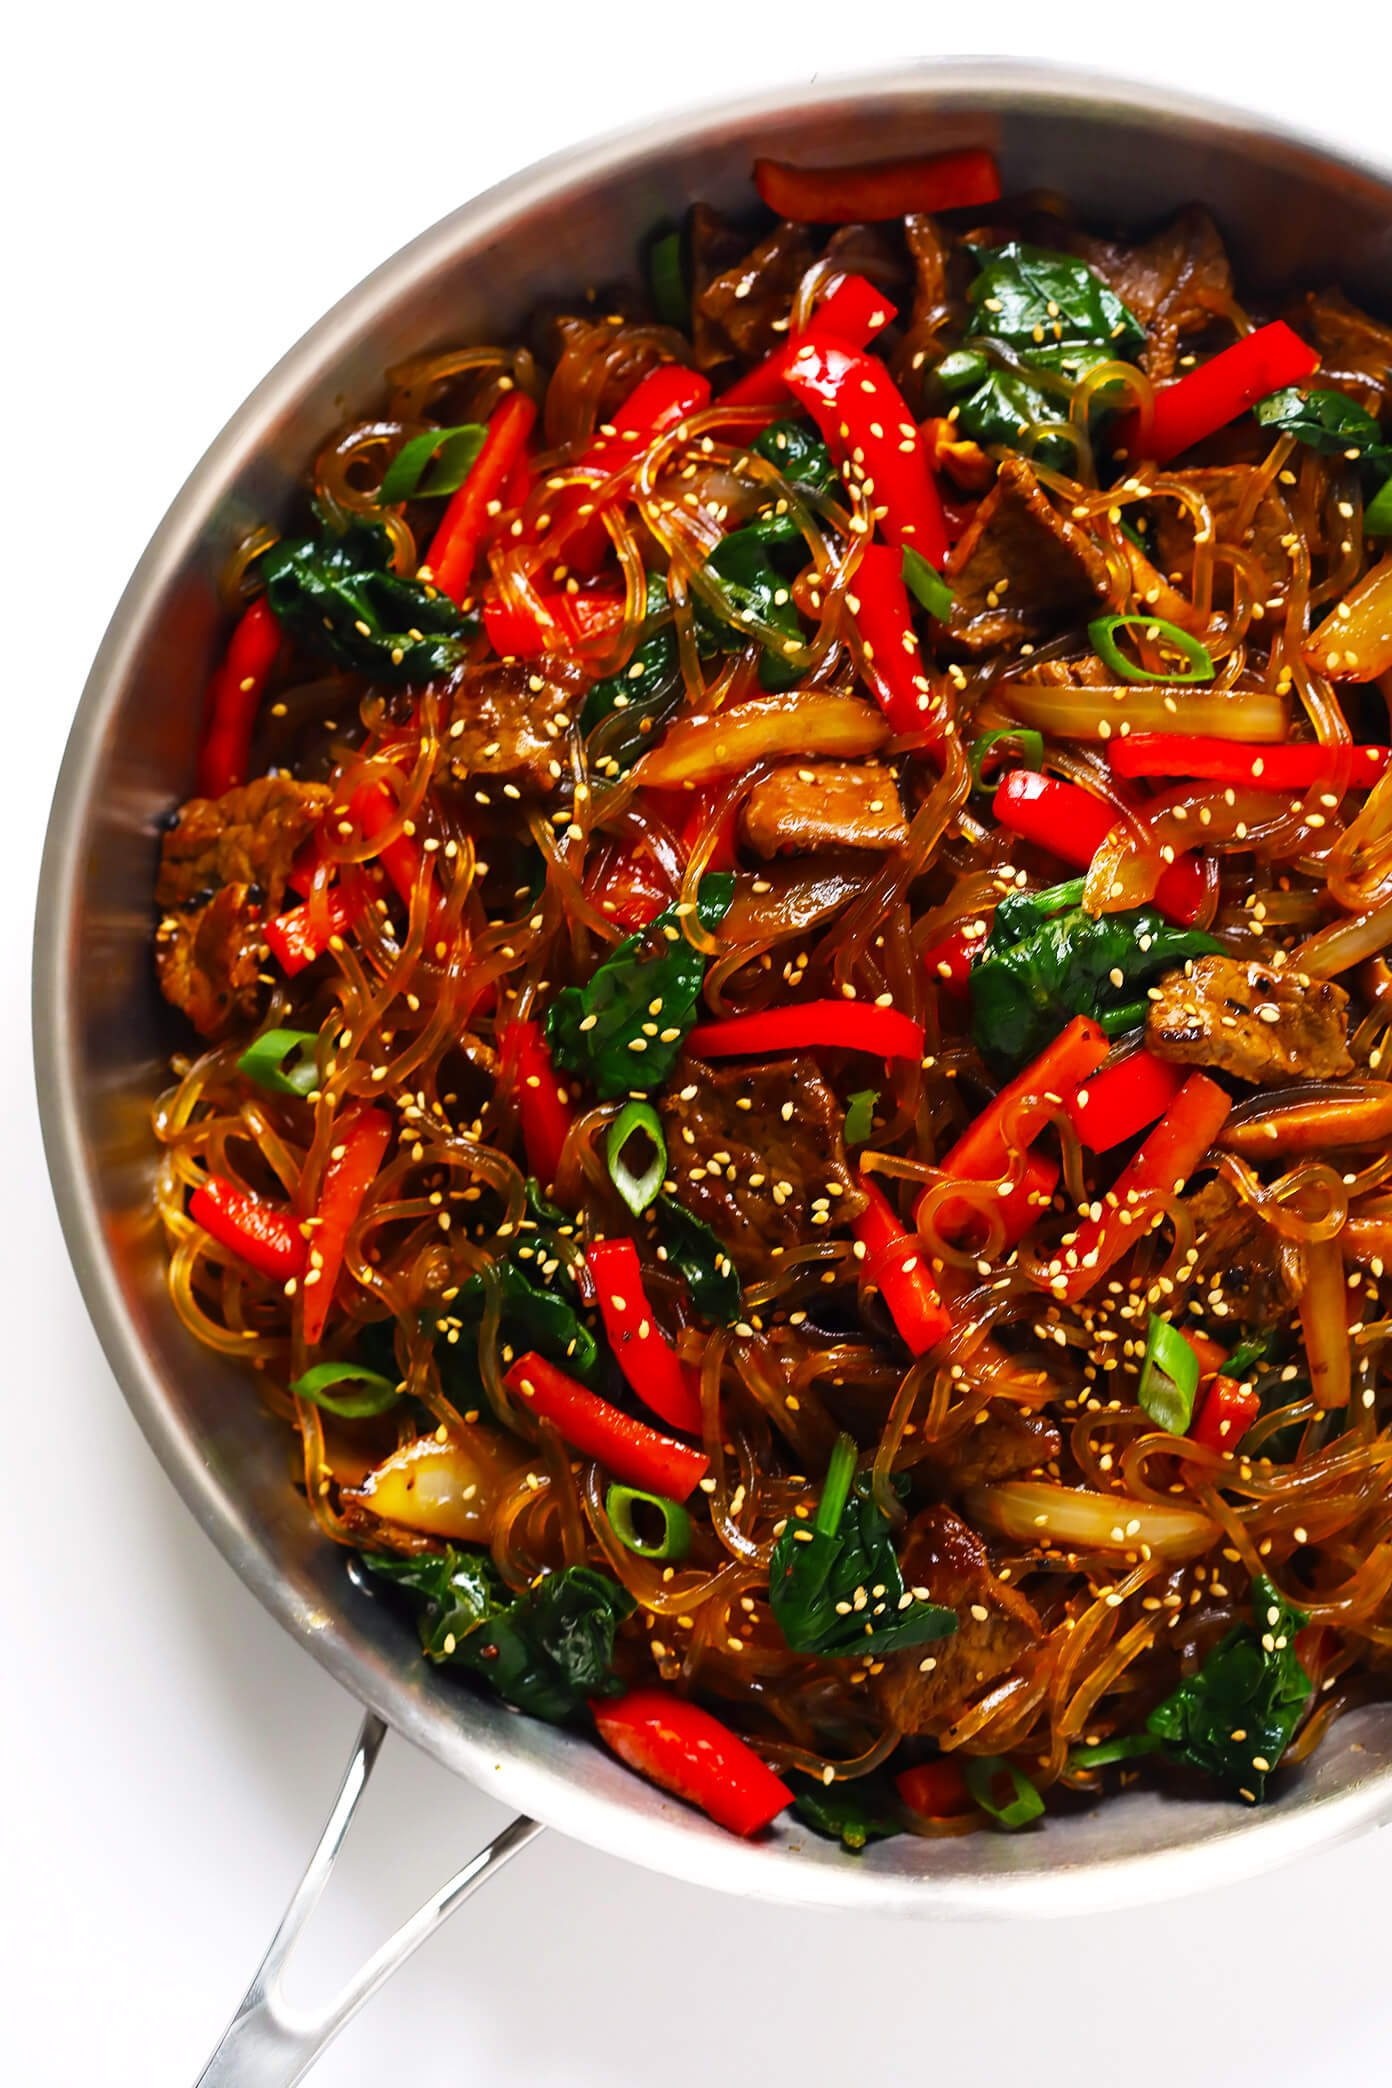 Japchae Korean Noodle Stir-Fry in sauté pan